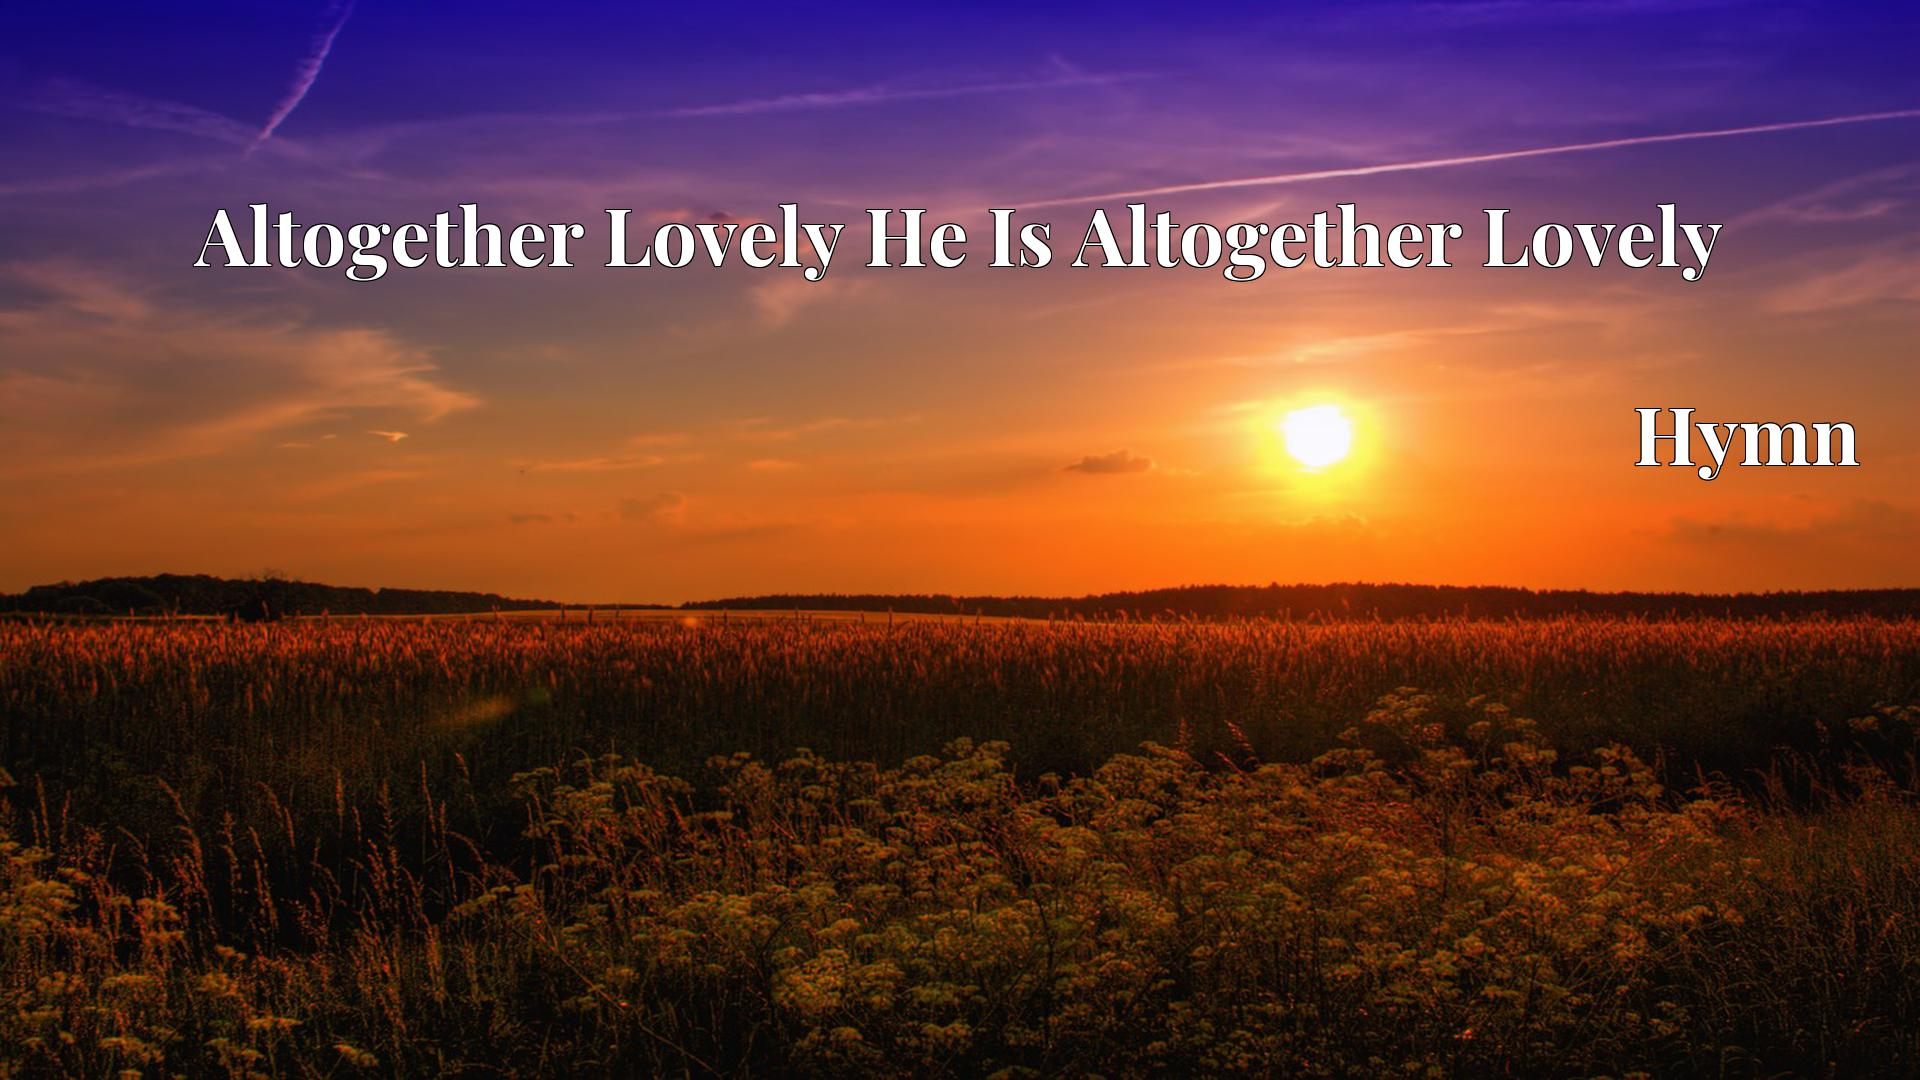 Altogether Lovely He Is Altogether Lovely - Hymn